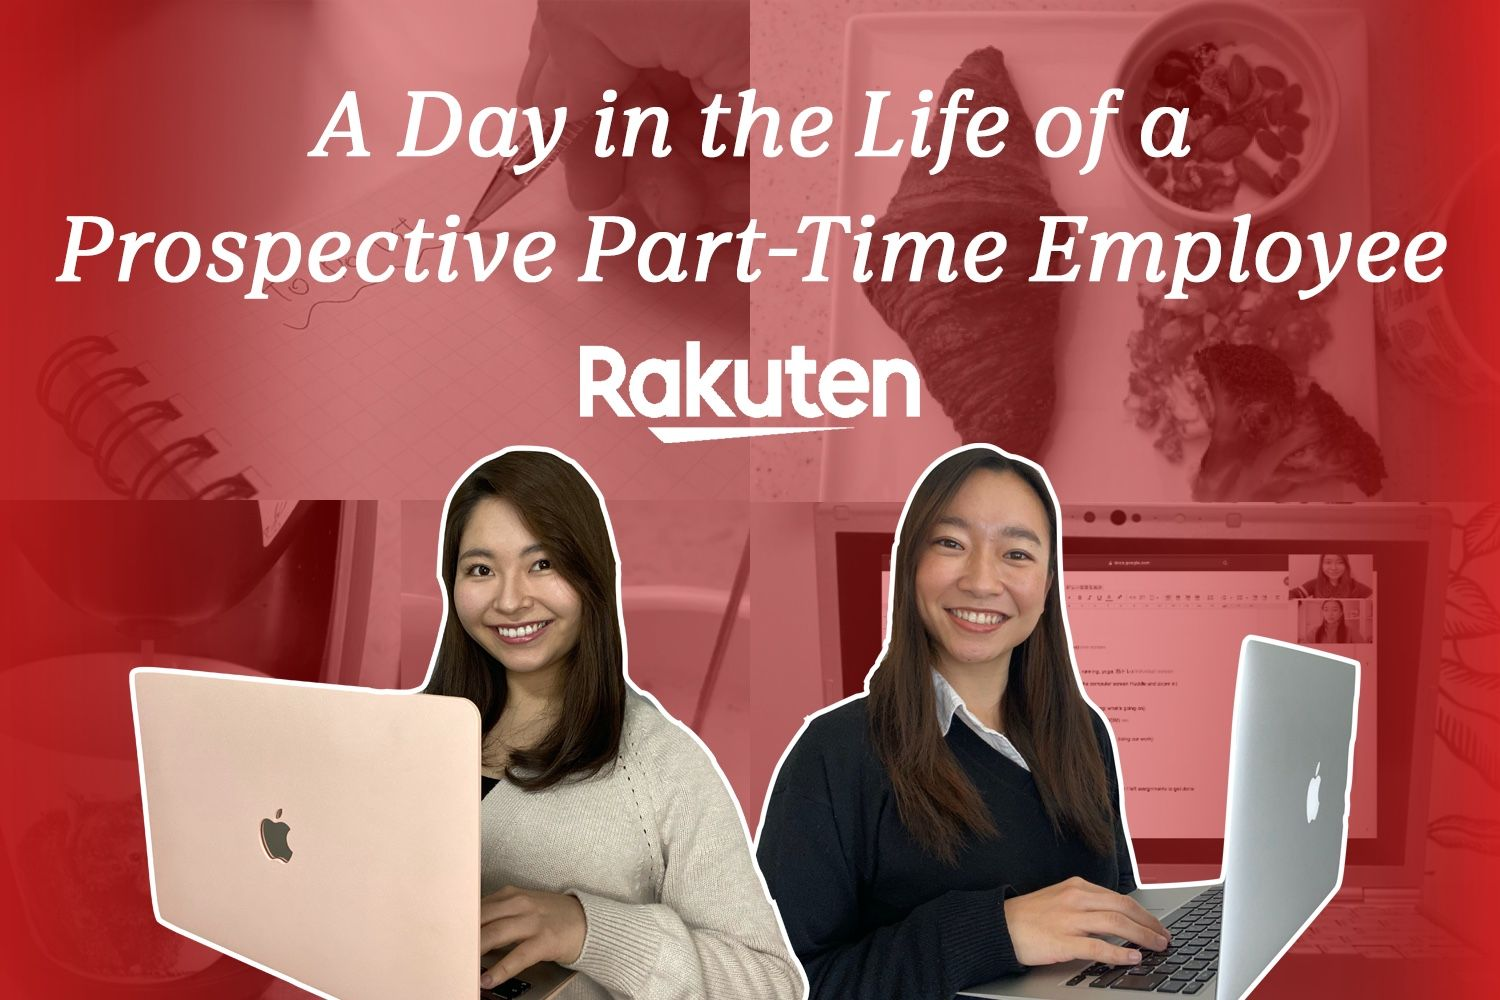 Kickstarting new careers: A day in the life of a prospective part-time employee